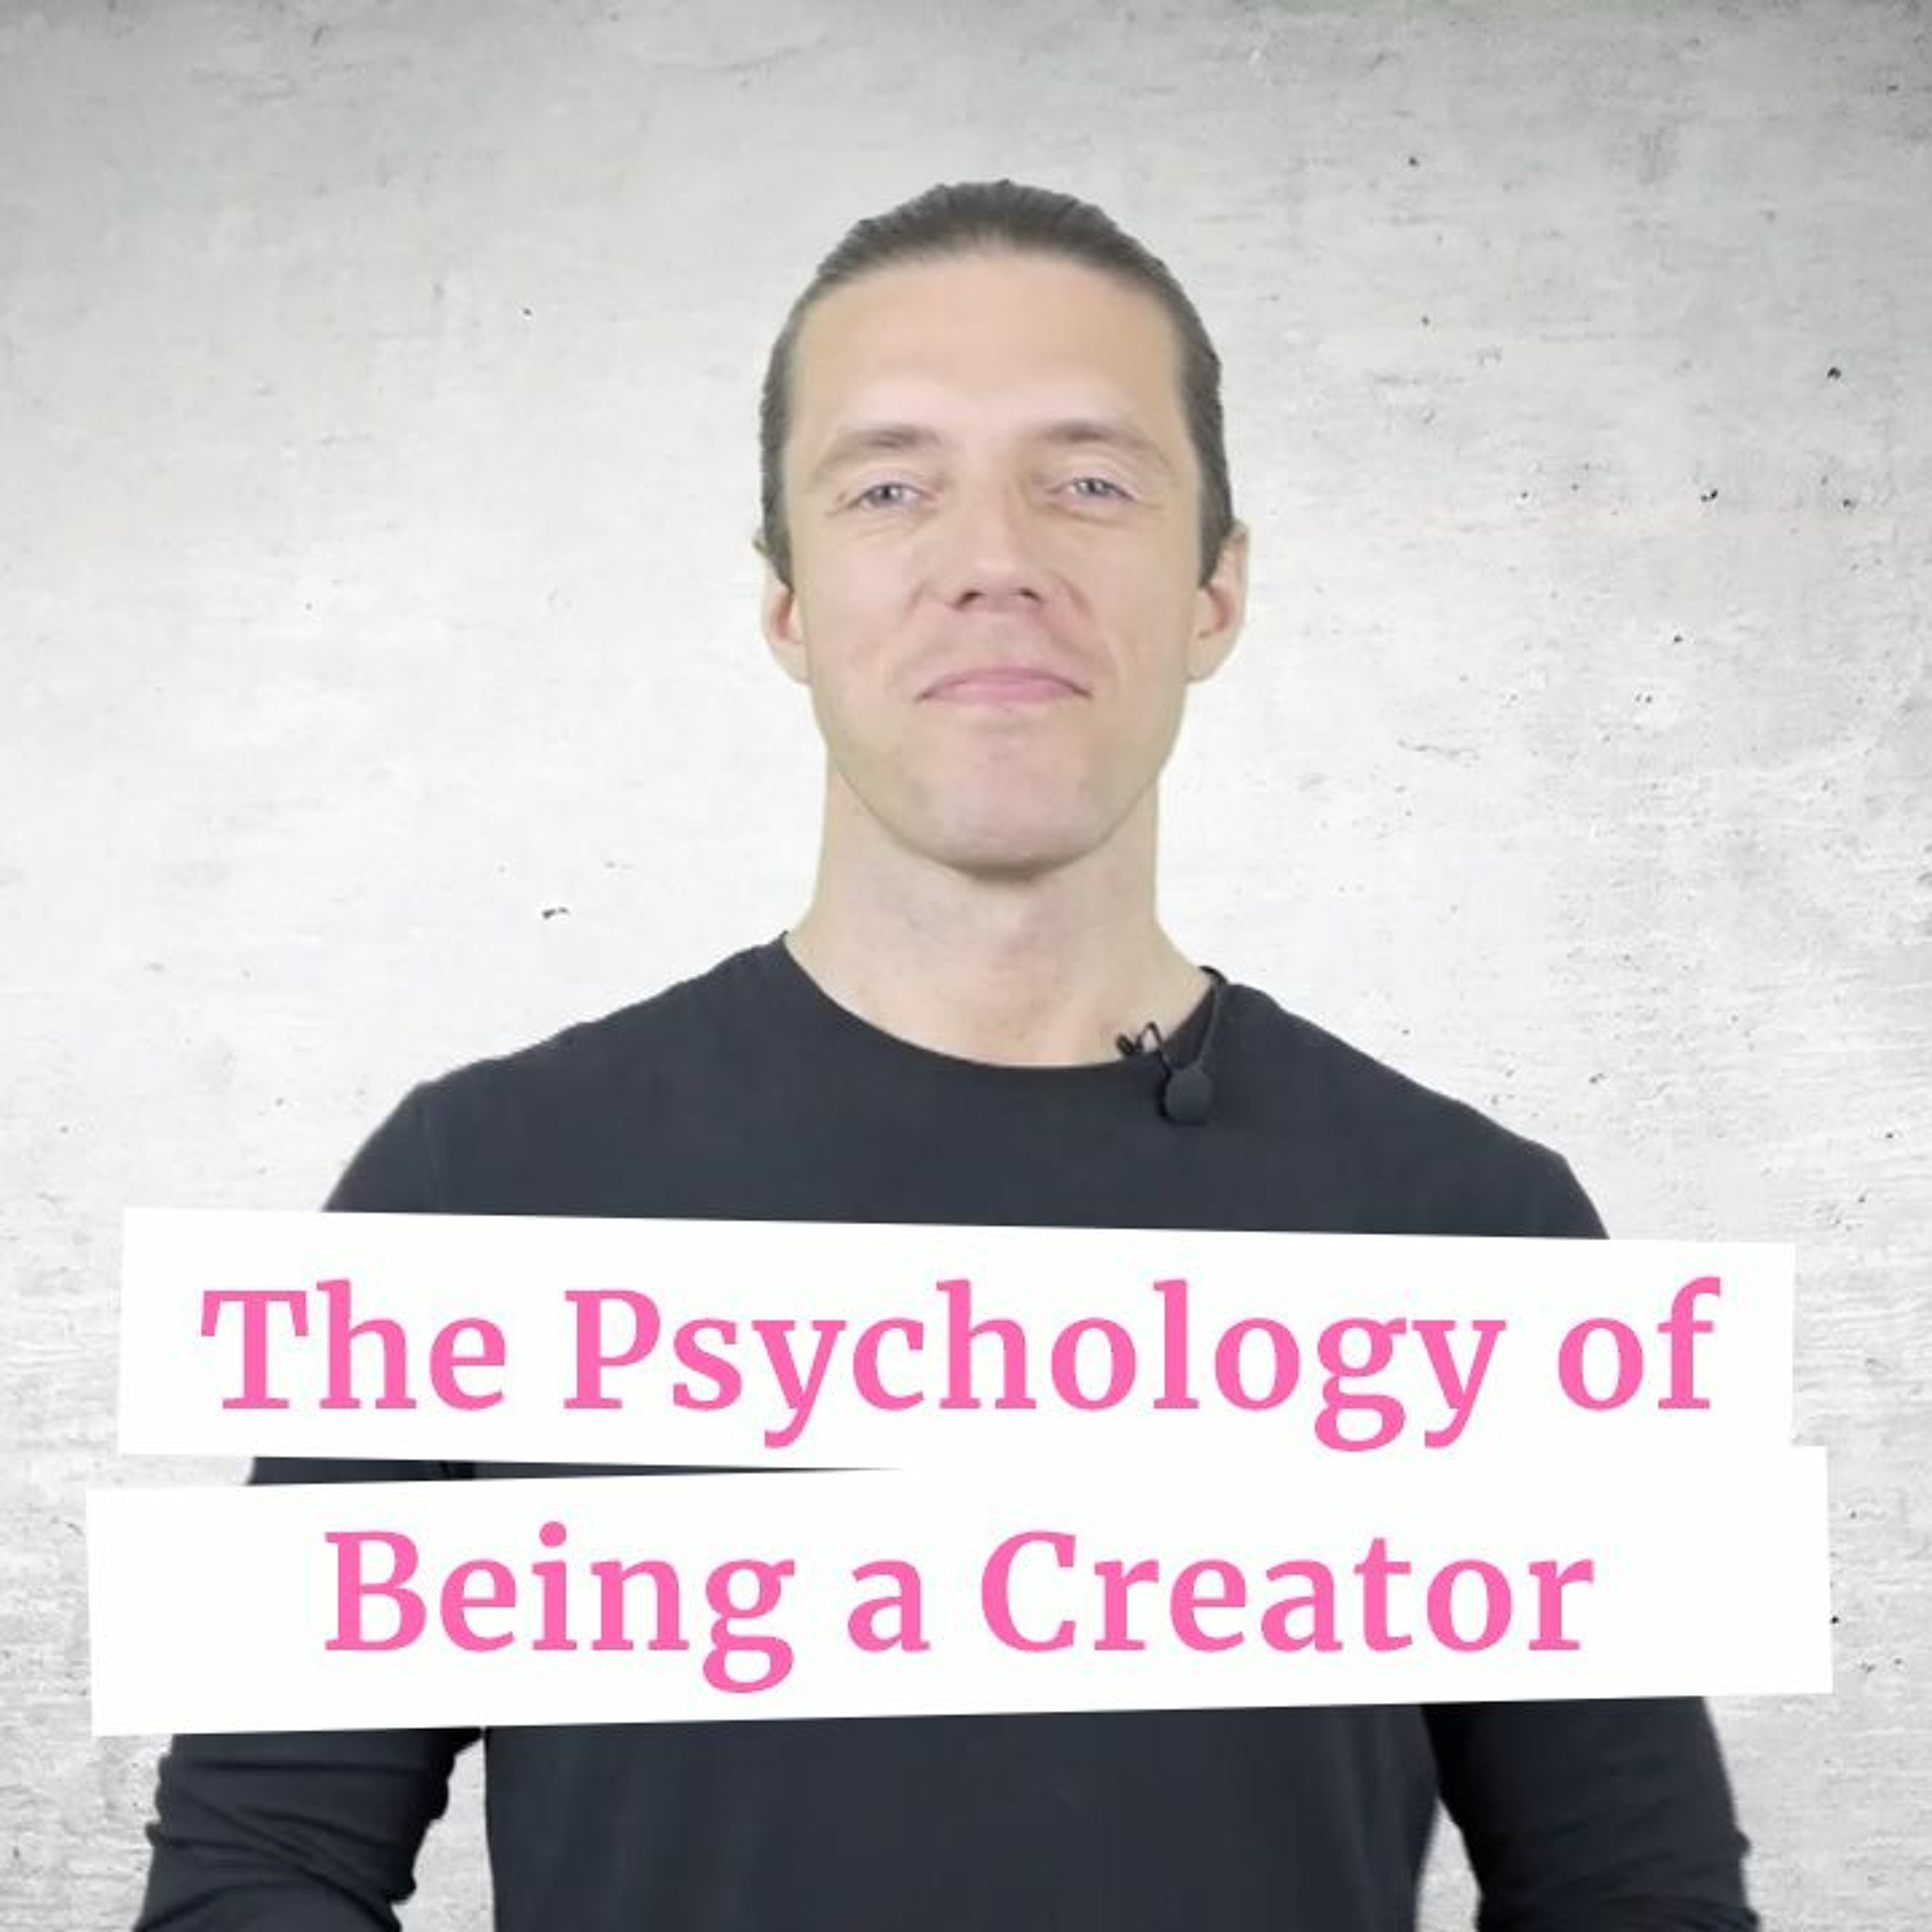 The Psychology of Being a Creator